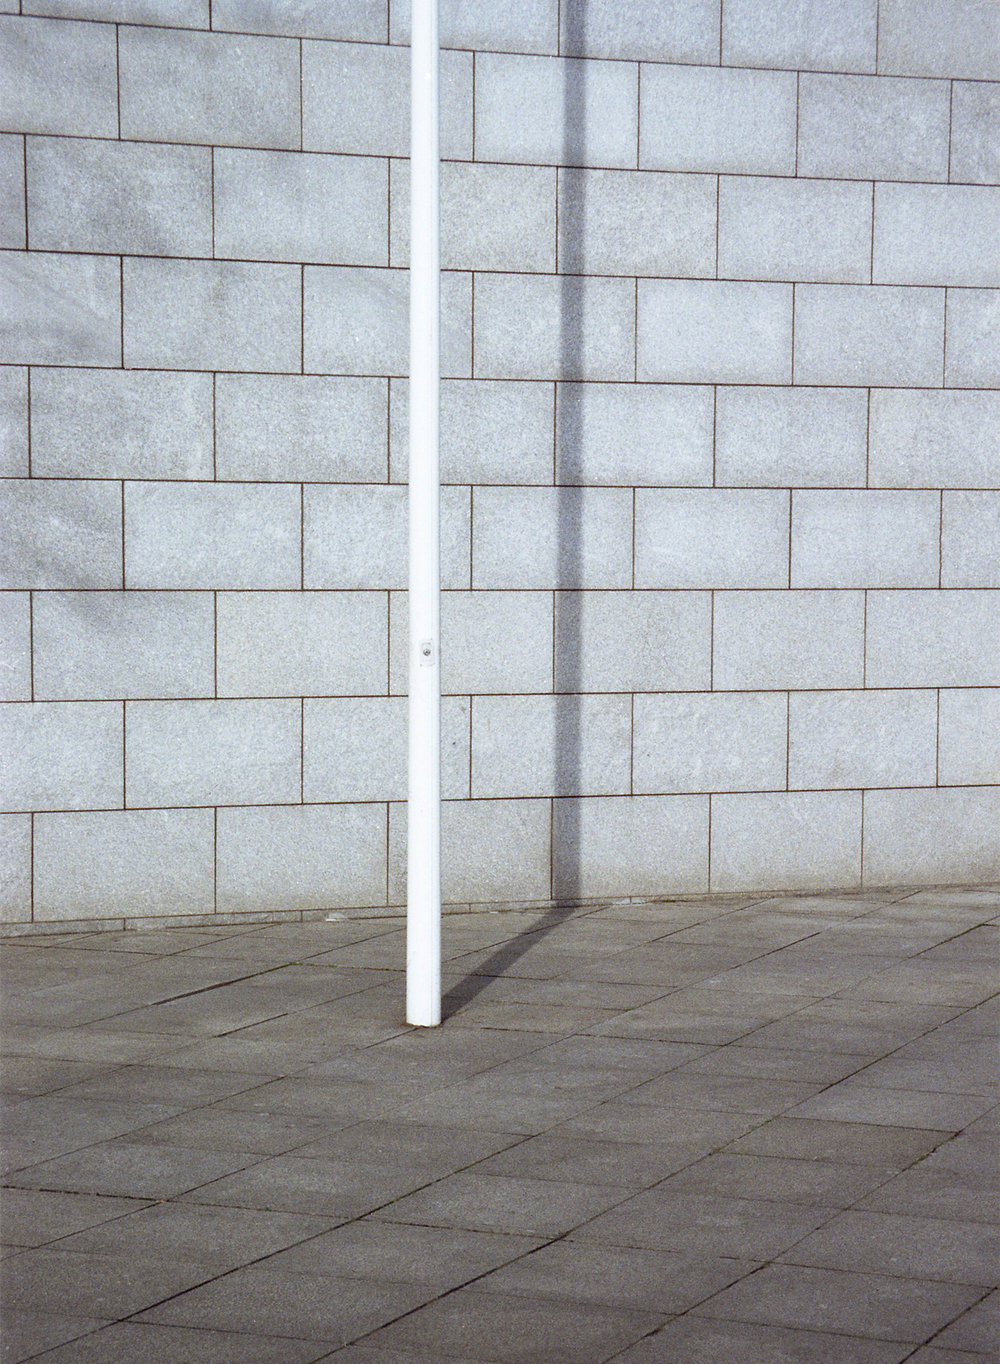 35 white pole copy.jpg